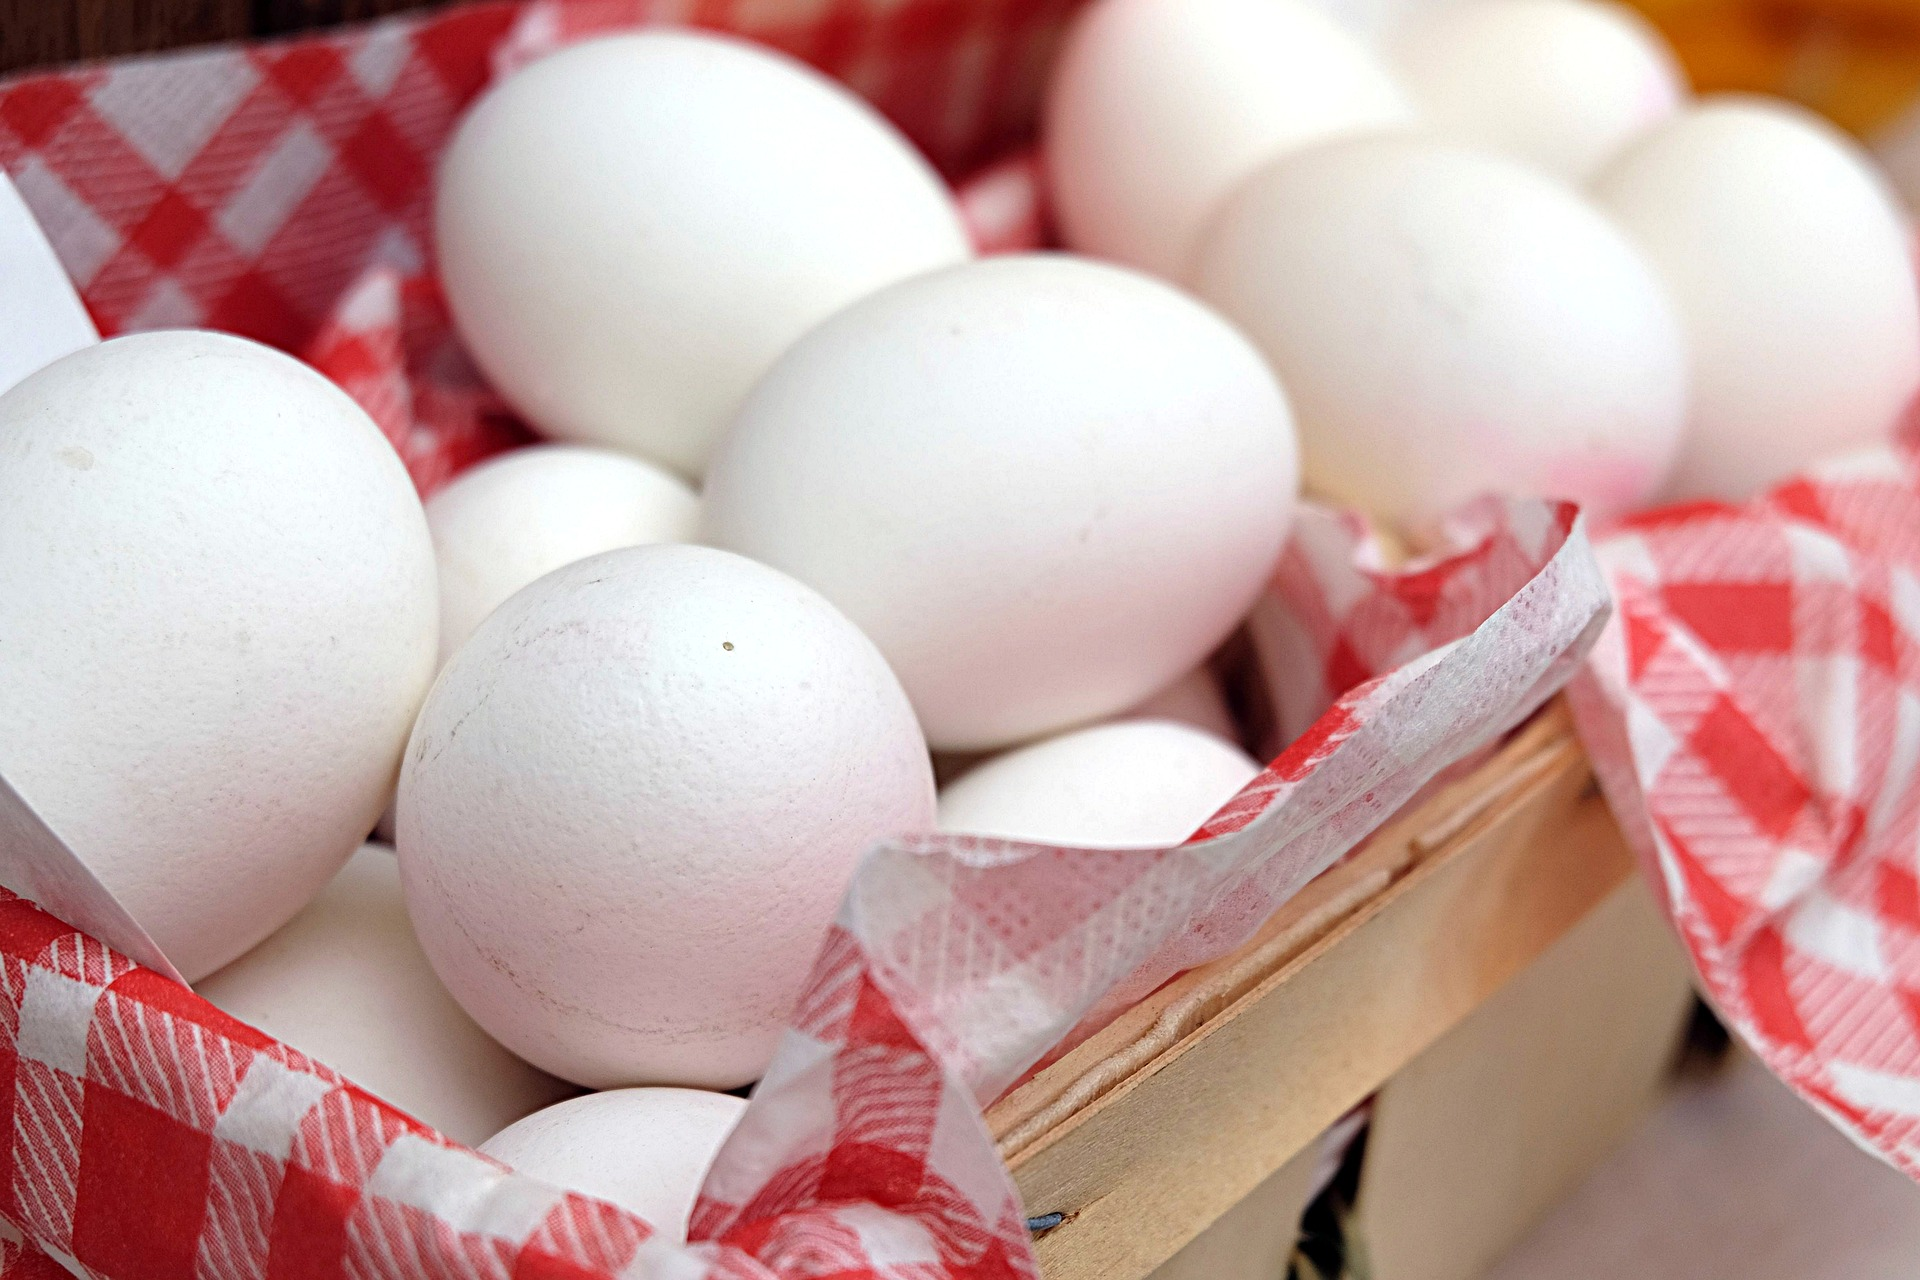 3 Easy Ways To Use Up Hardboiled Eggs, Plus The Simplest Deviled Eggs How To